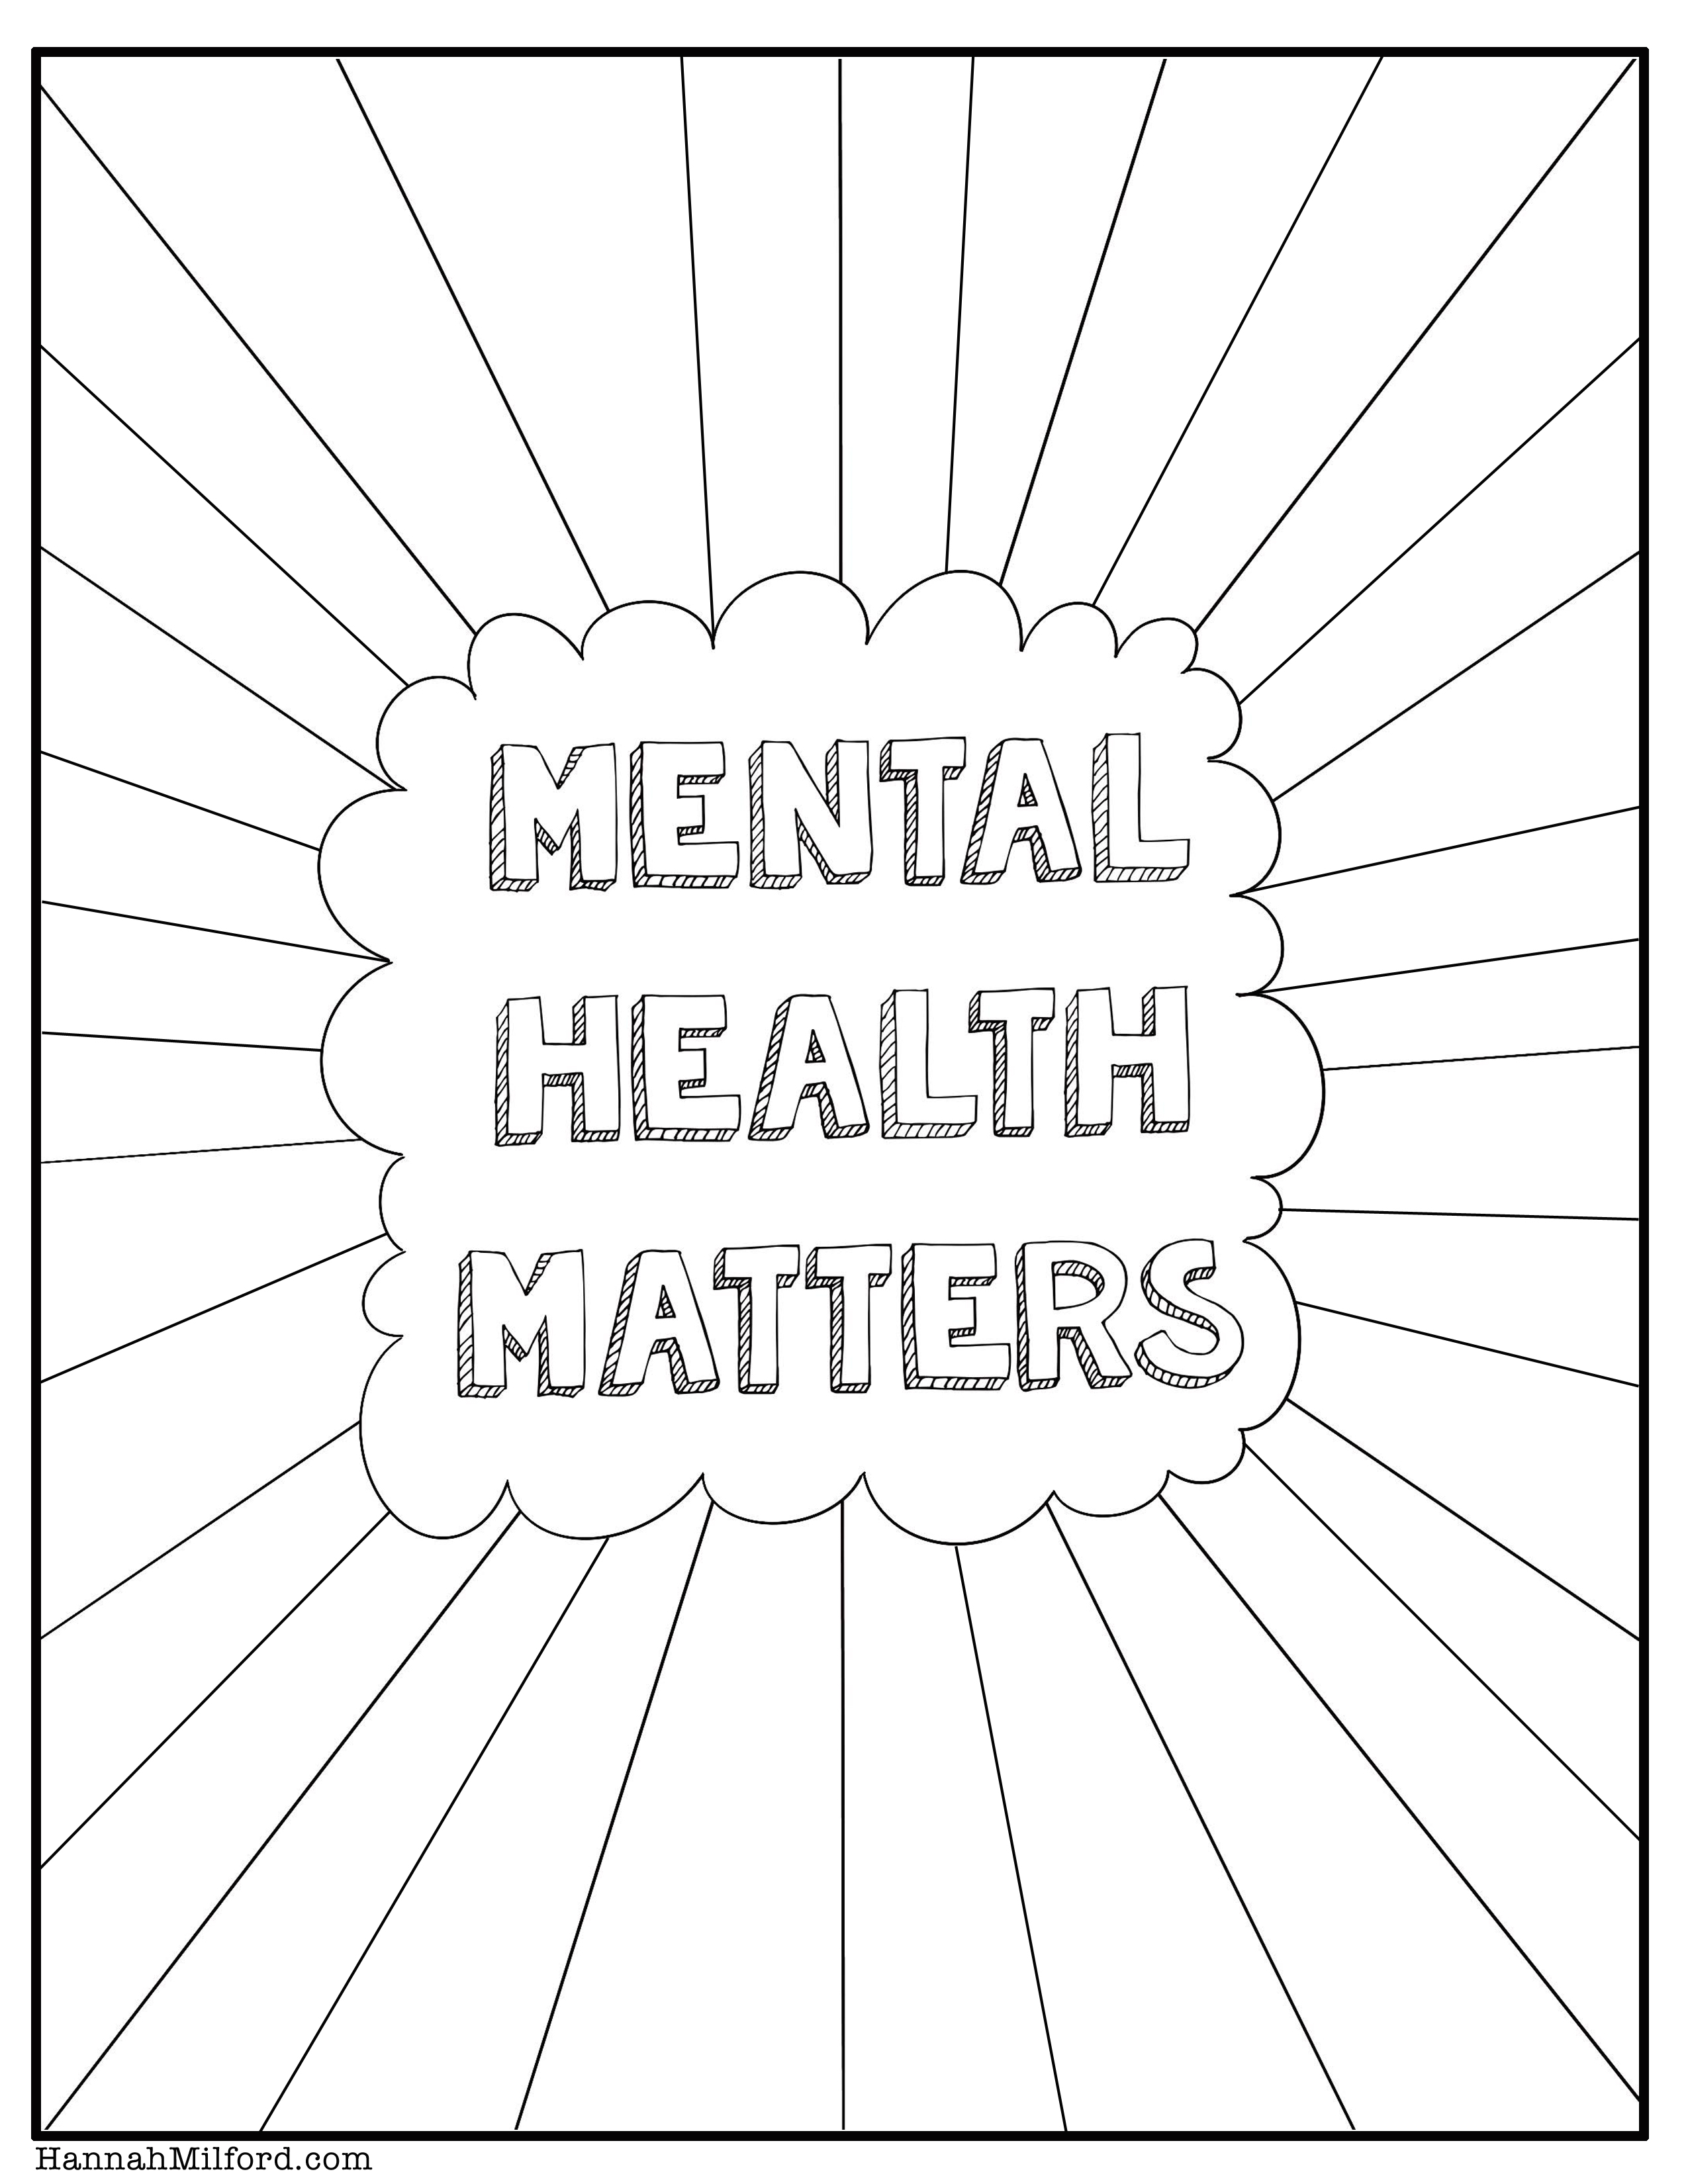 This free coloring page is available for download. The coloring page shows a hand-drawn Mental Health Matters poster.